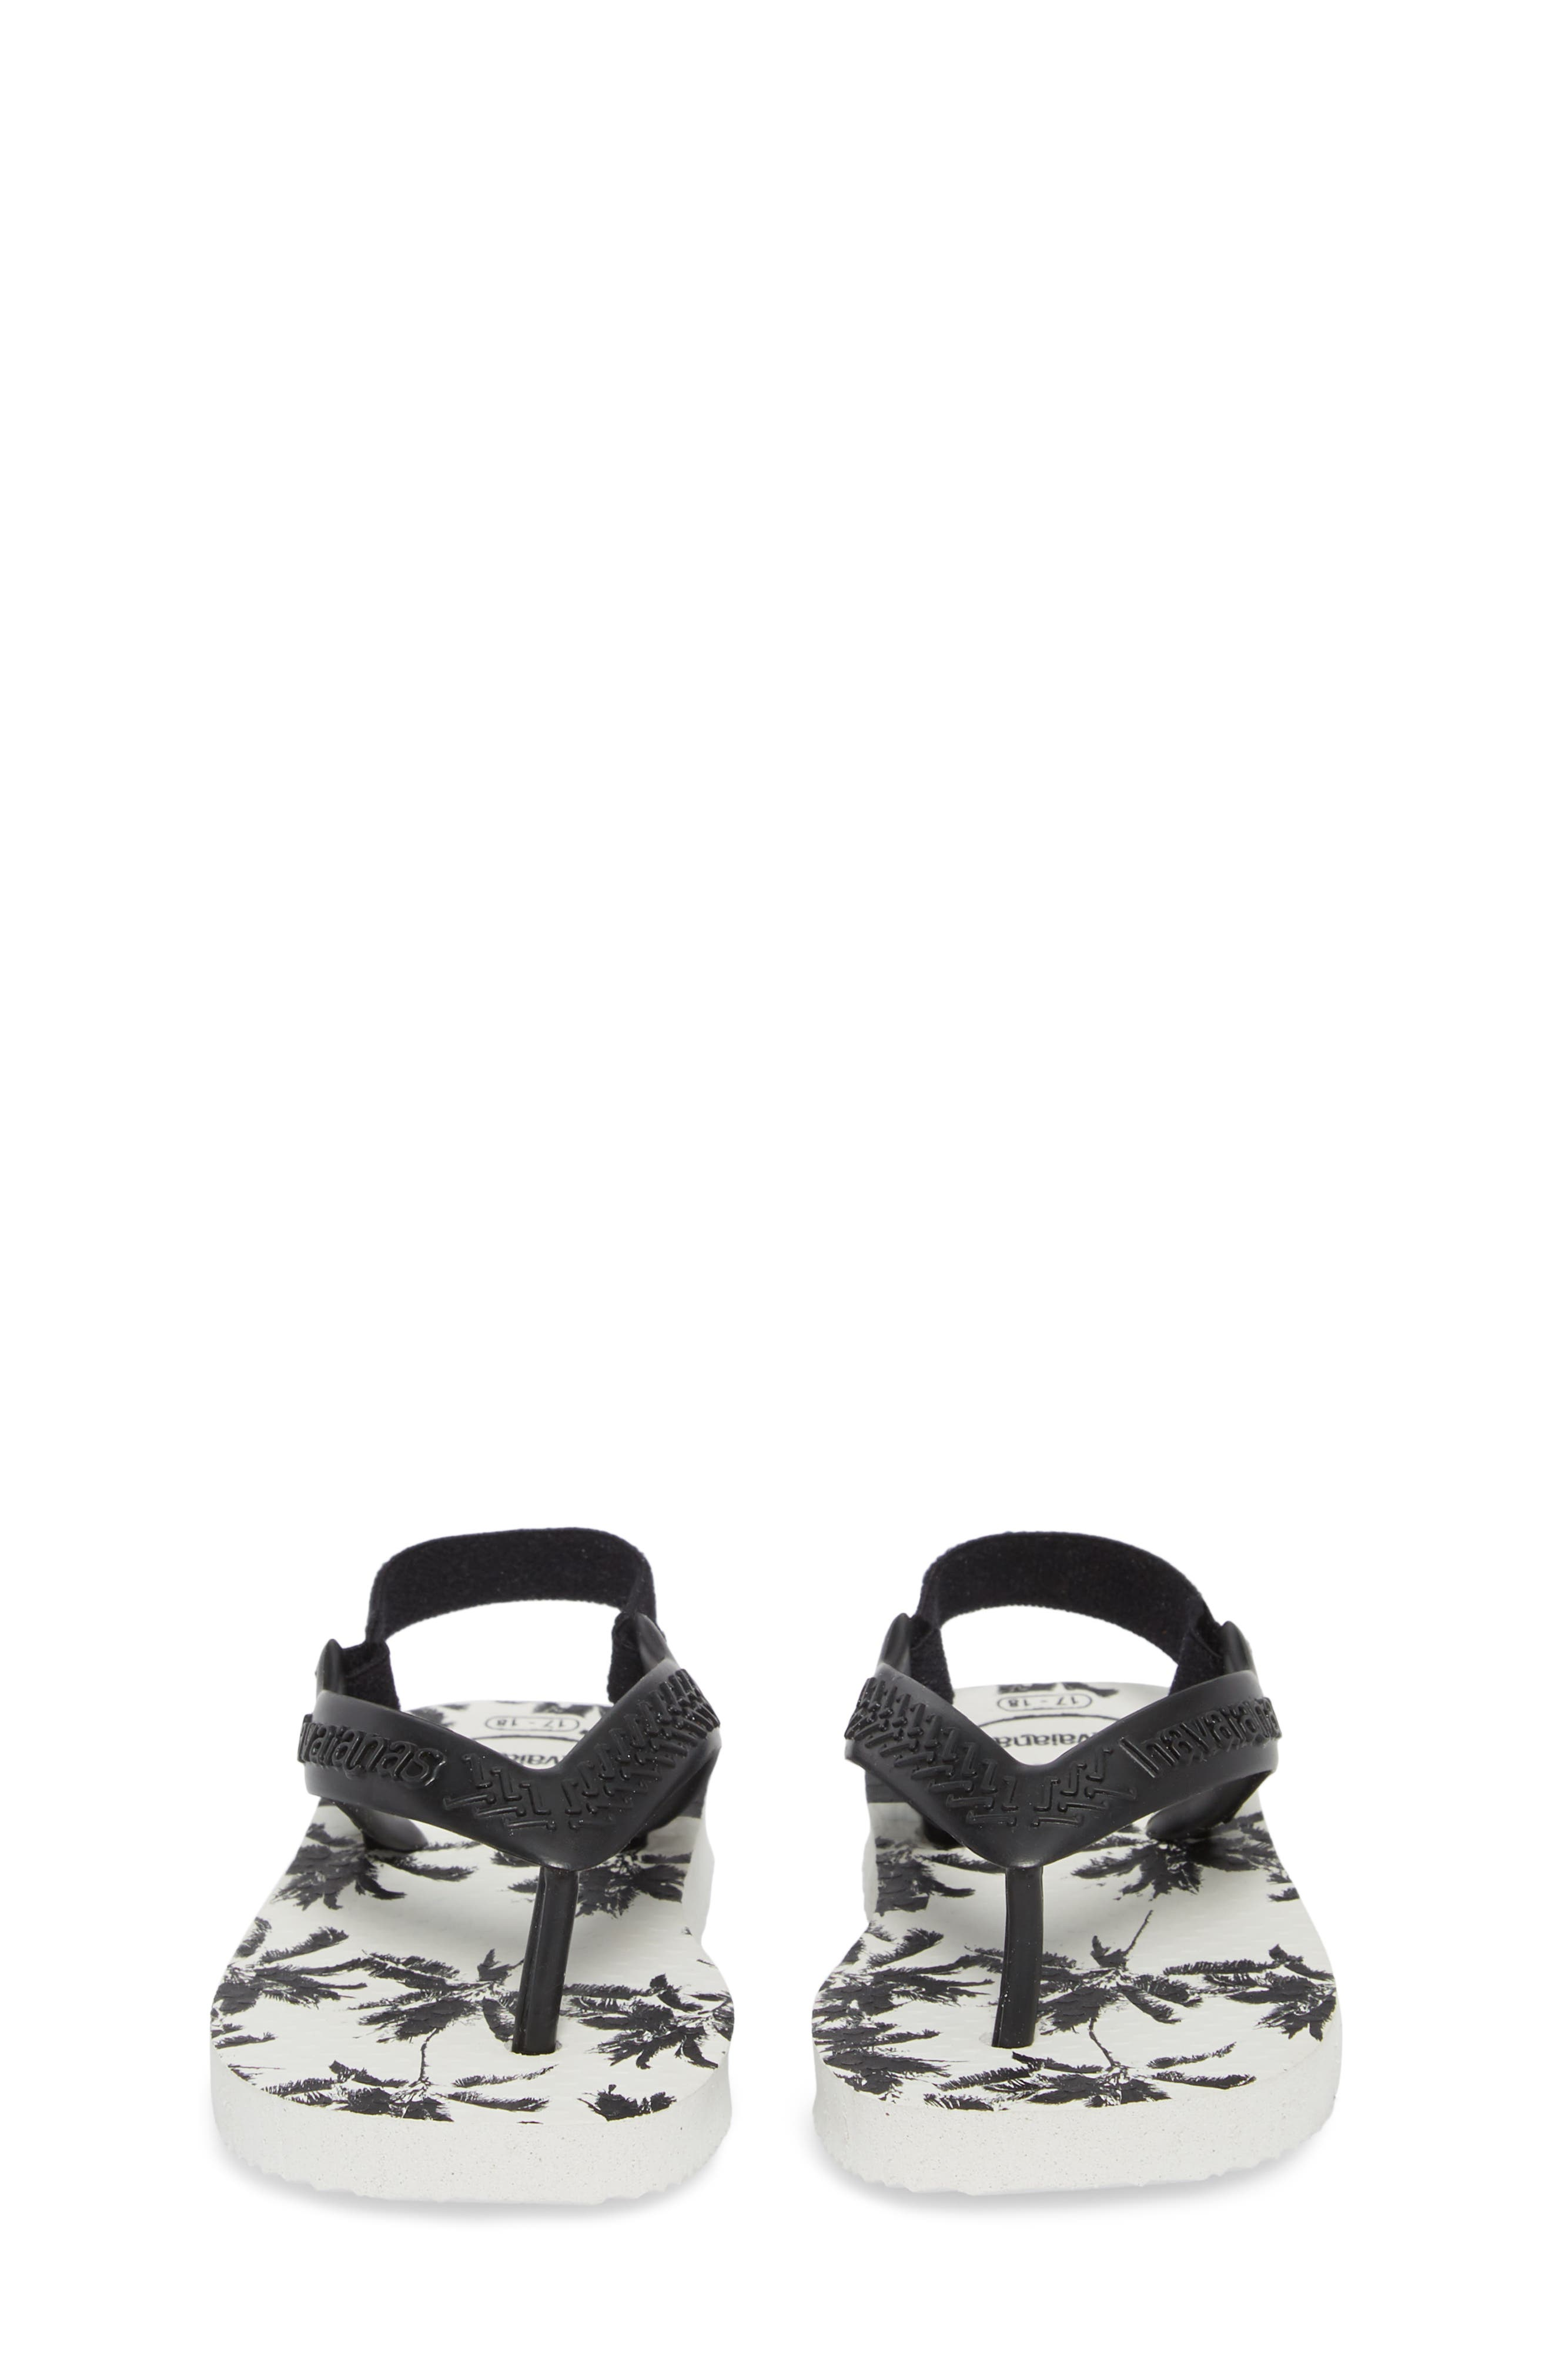 Havianas Baby Chic Sandal,                             Alternate thumbnail 5, color,                             White/ Black/ Black